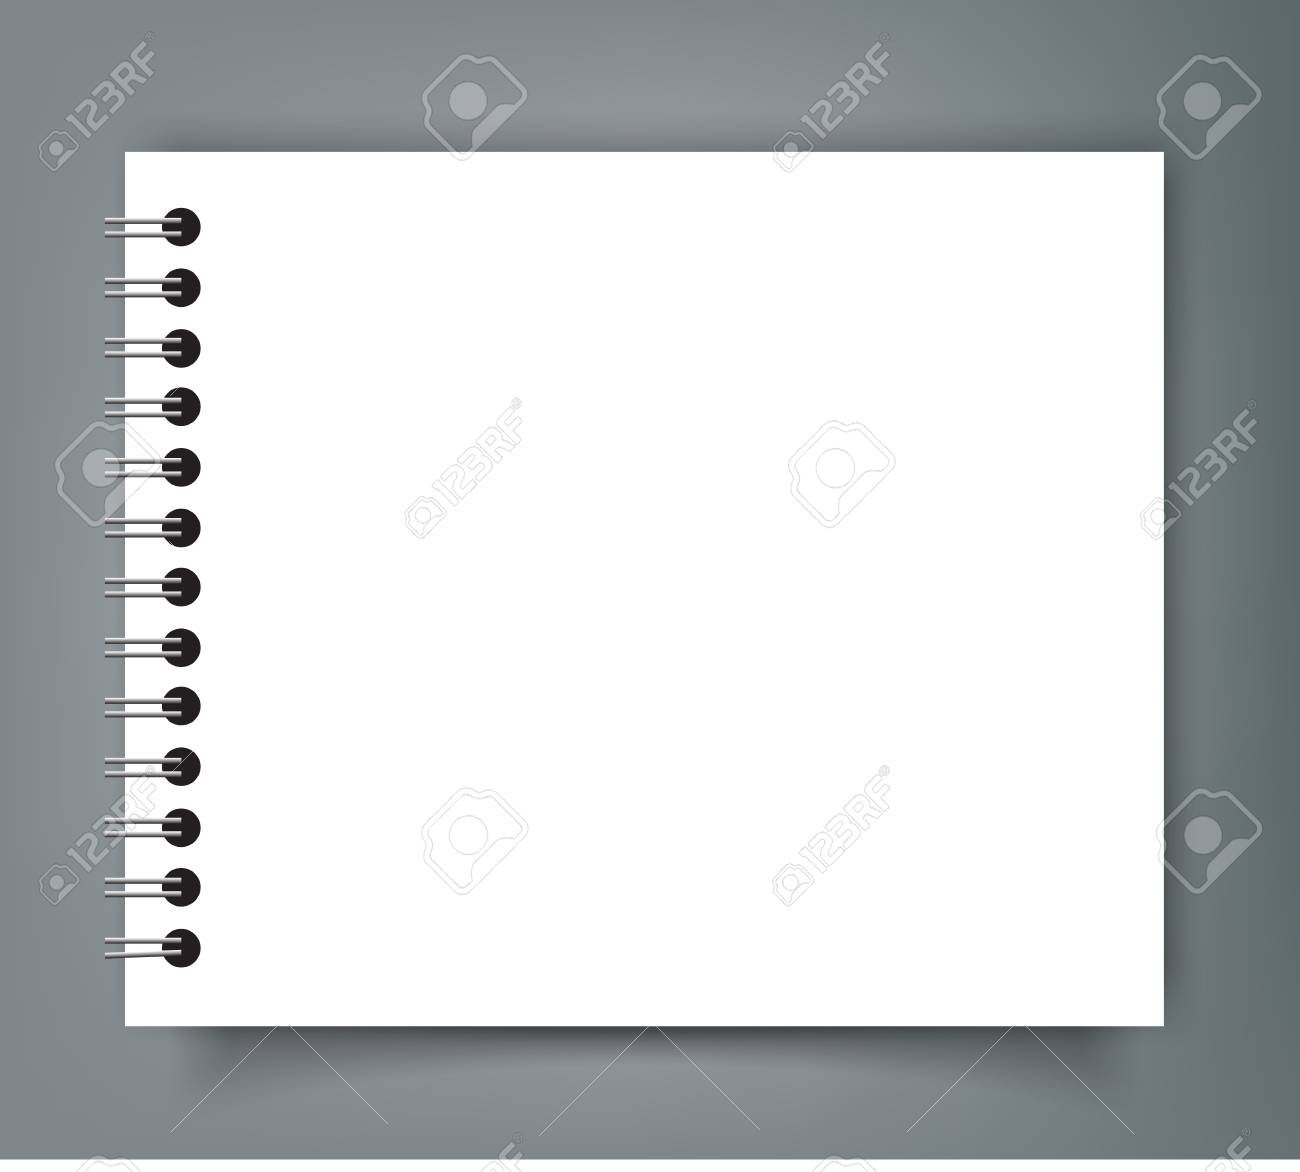 Blank Square notebook calendar mockup cover template. - 90405723